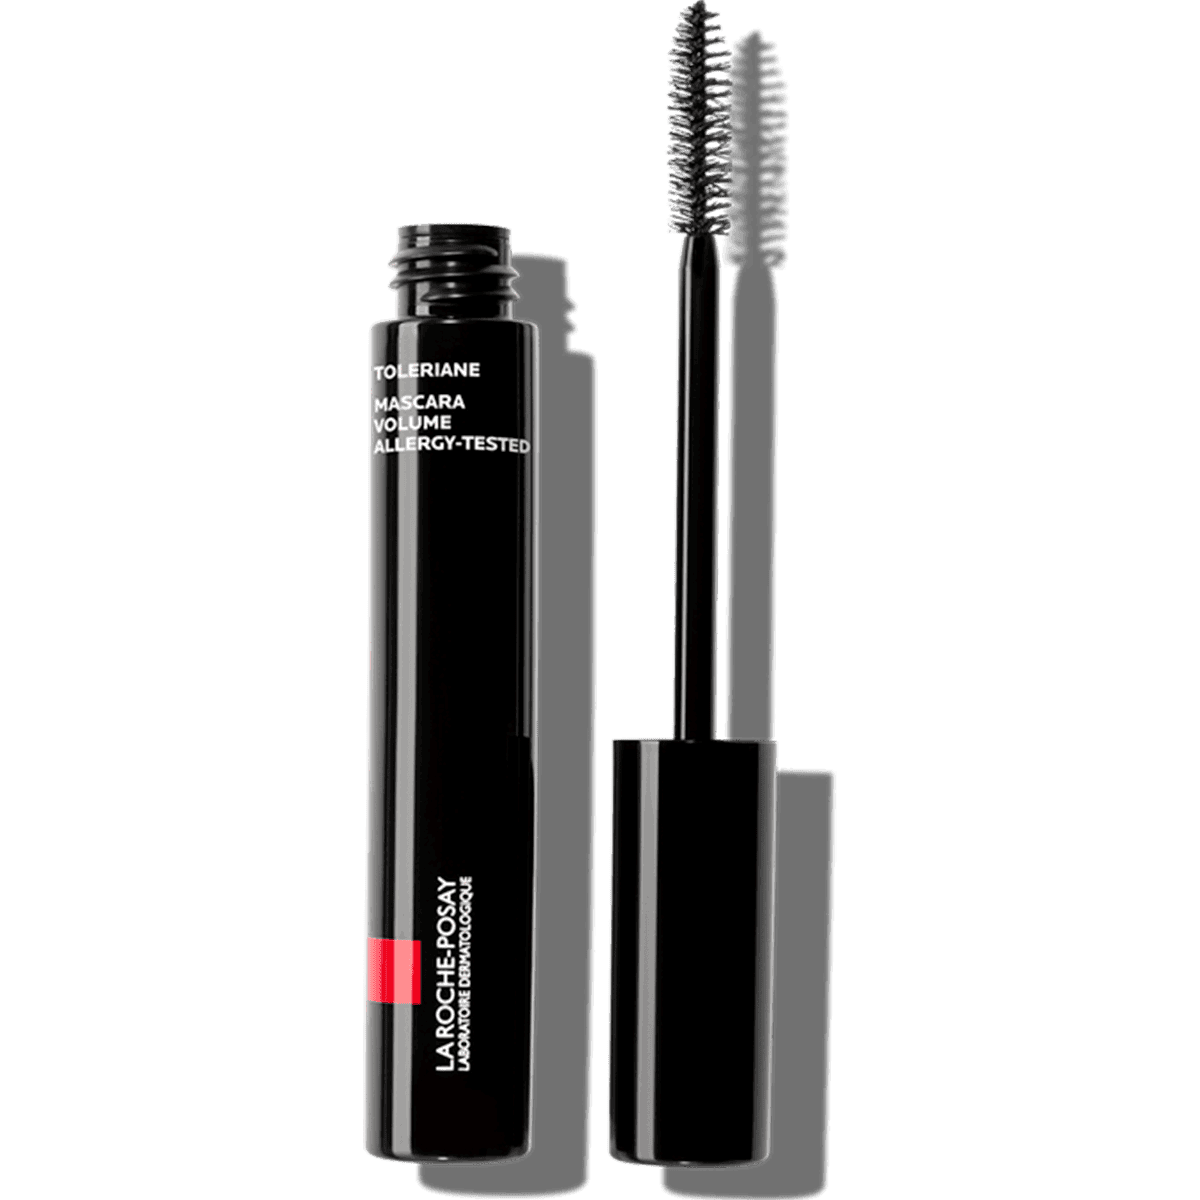 La Roche Posay Sensitive Toleriane Make up VOLUME_MASCARA Black 333787